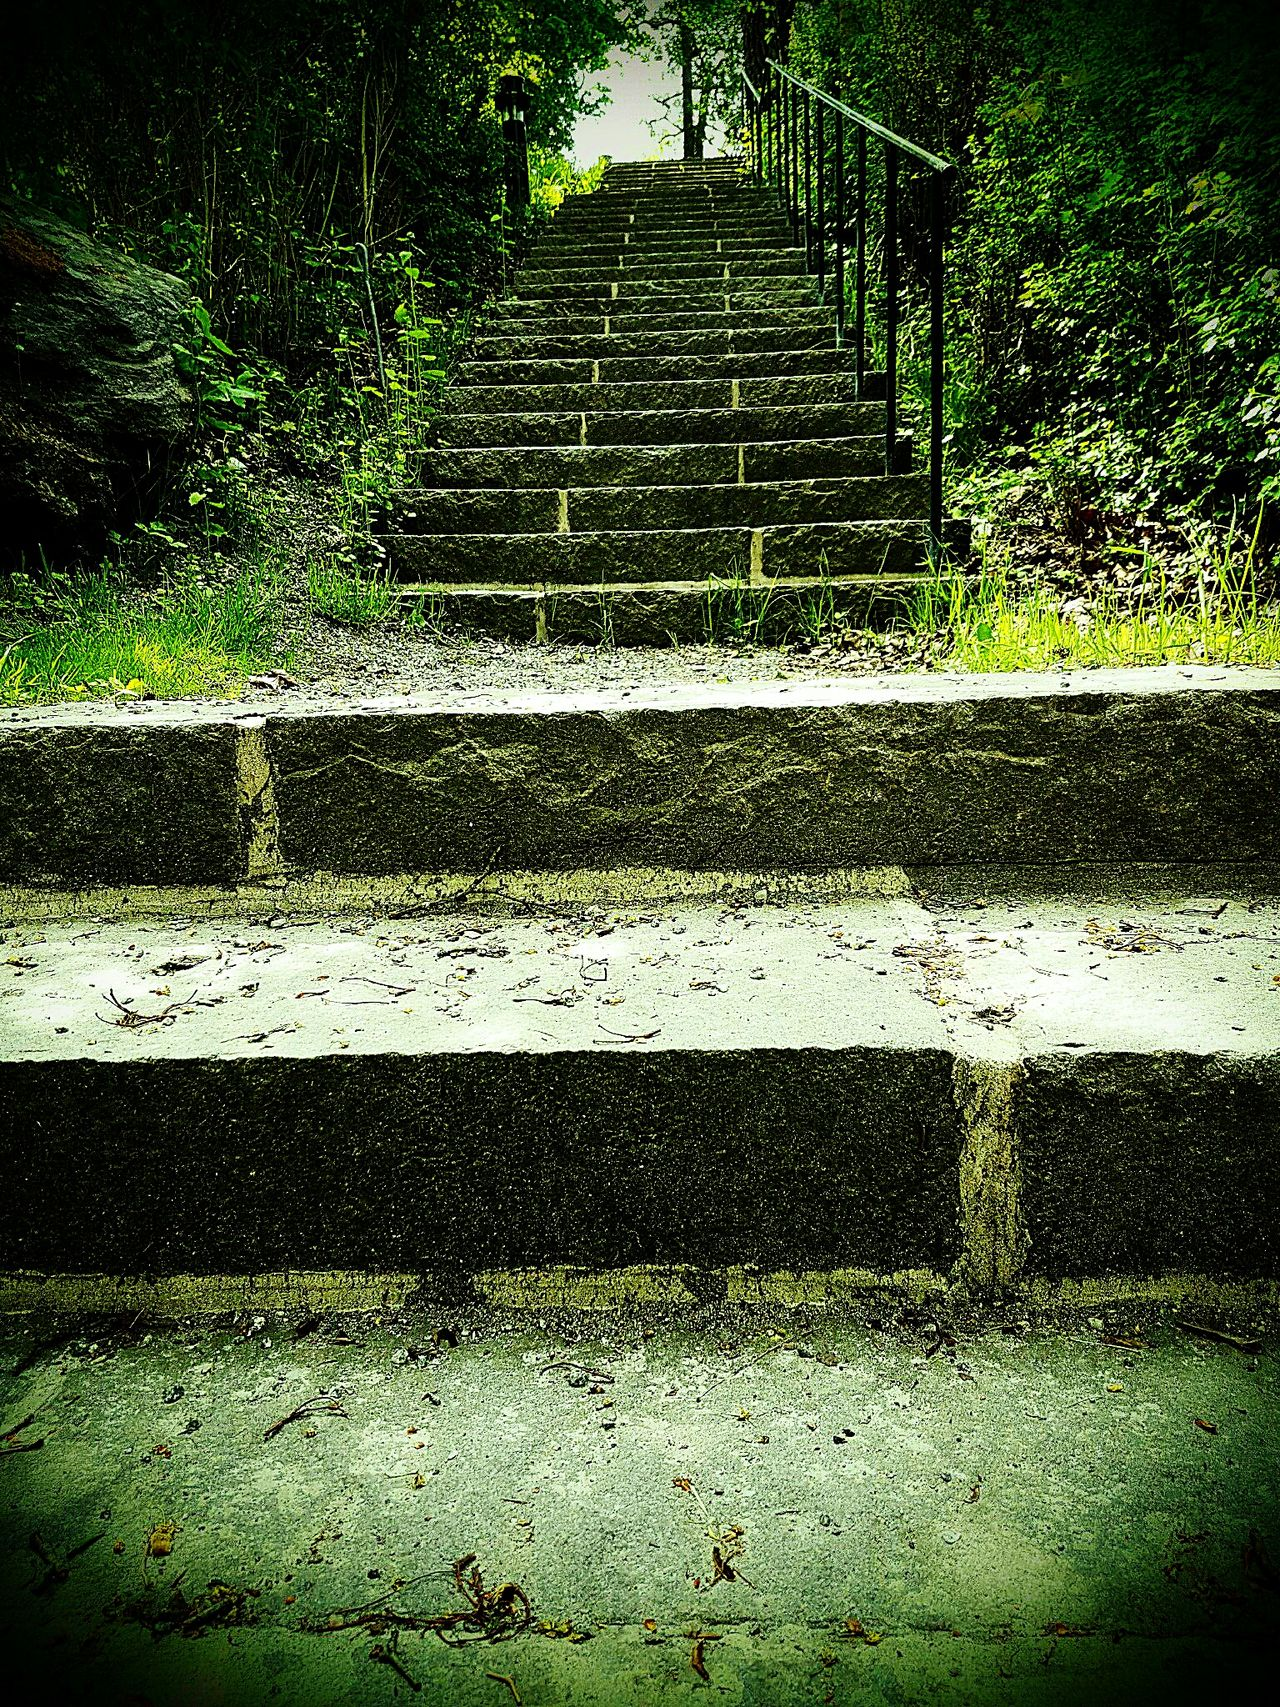 EyeEm Stairways Eyeem Stairs Collection EyeEm Gallery EyeEm Stairs Stairs_collection Stairway To Heaven Green Green Green!  Stone Stairs Stone Steps Stairs To Heaven Best Shots EyeEm Popular Photo Best Shots EyeEm Best Shots Eye4photography  Check This Out Best Shot Popular Popular Photos EyeEm Best Edits Eyeemphotography